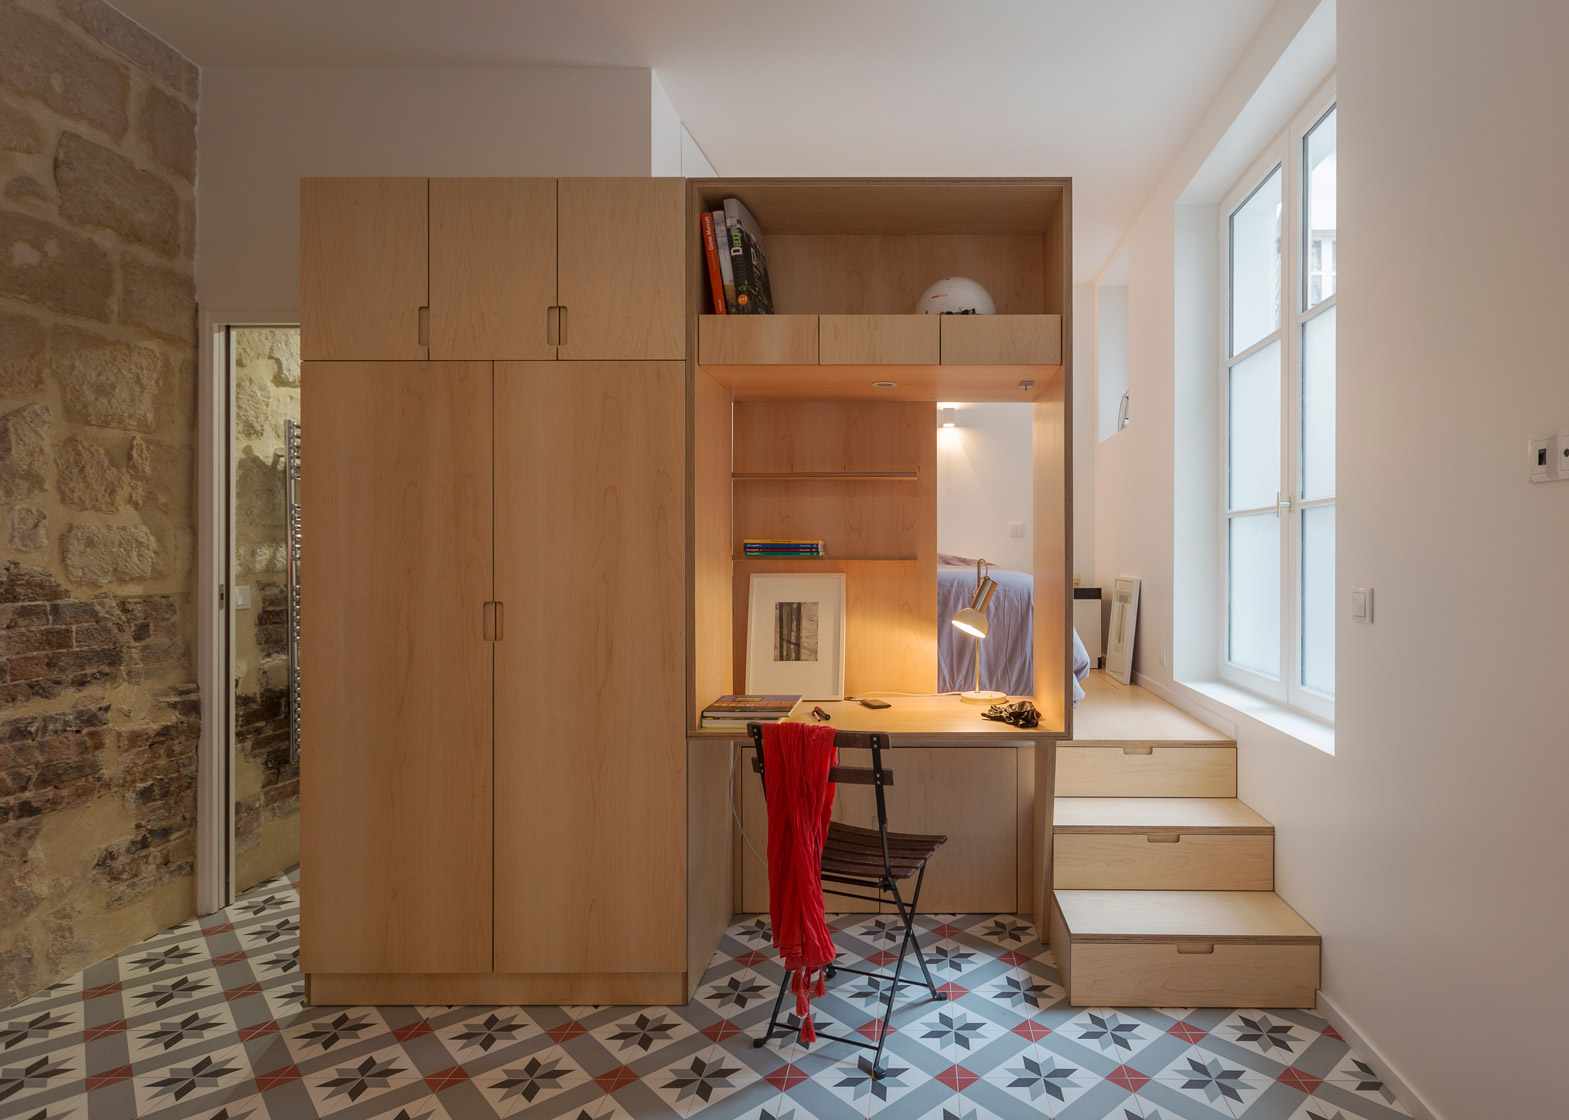 Studio apartment by Anne Rolland has a hidden room